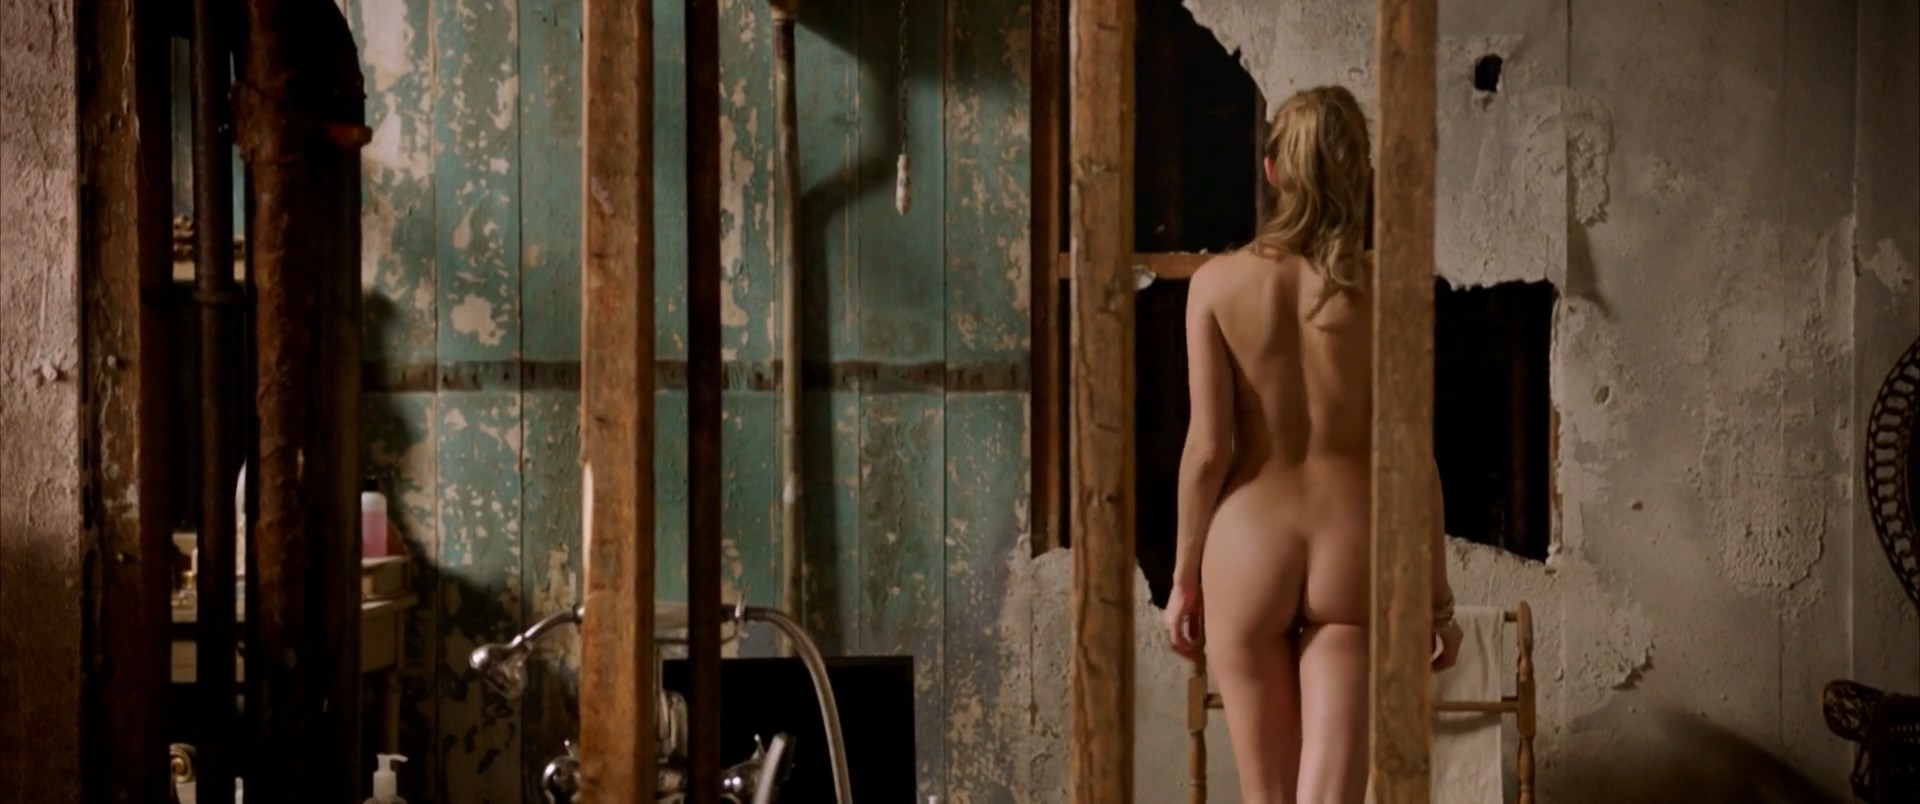 Amber Heard nude - London Fields (2018)